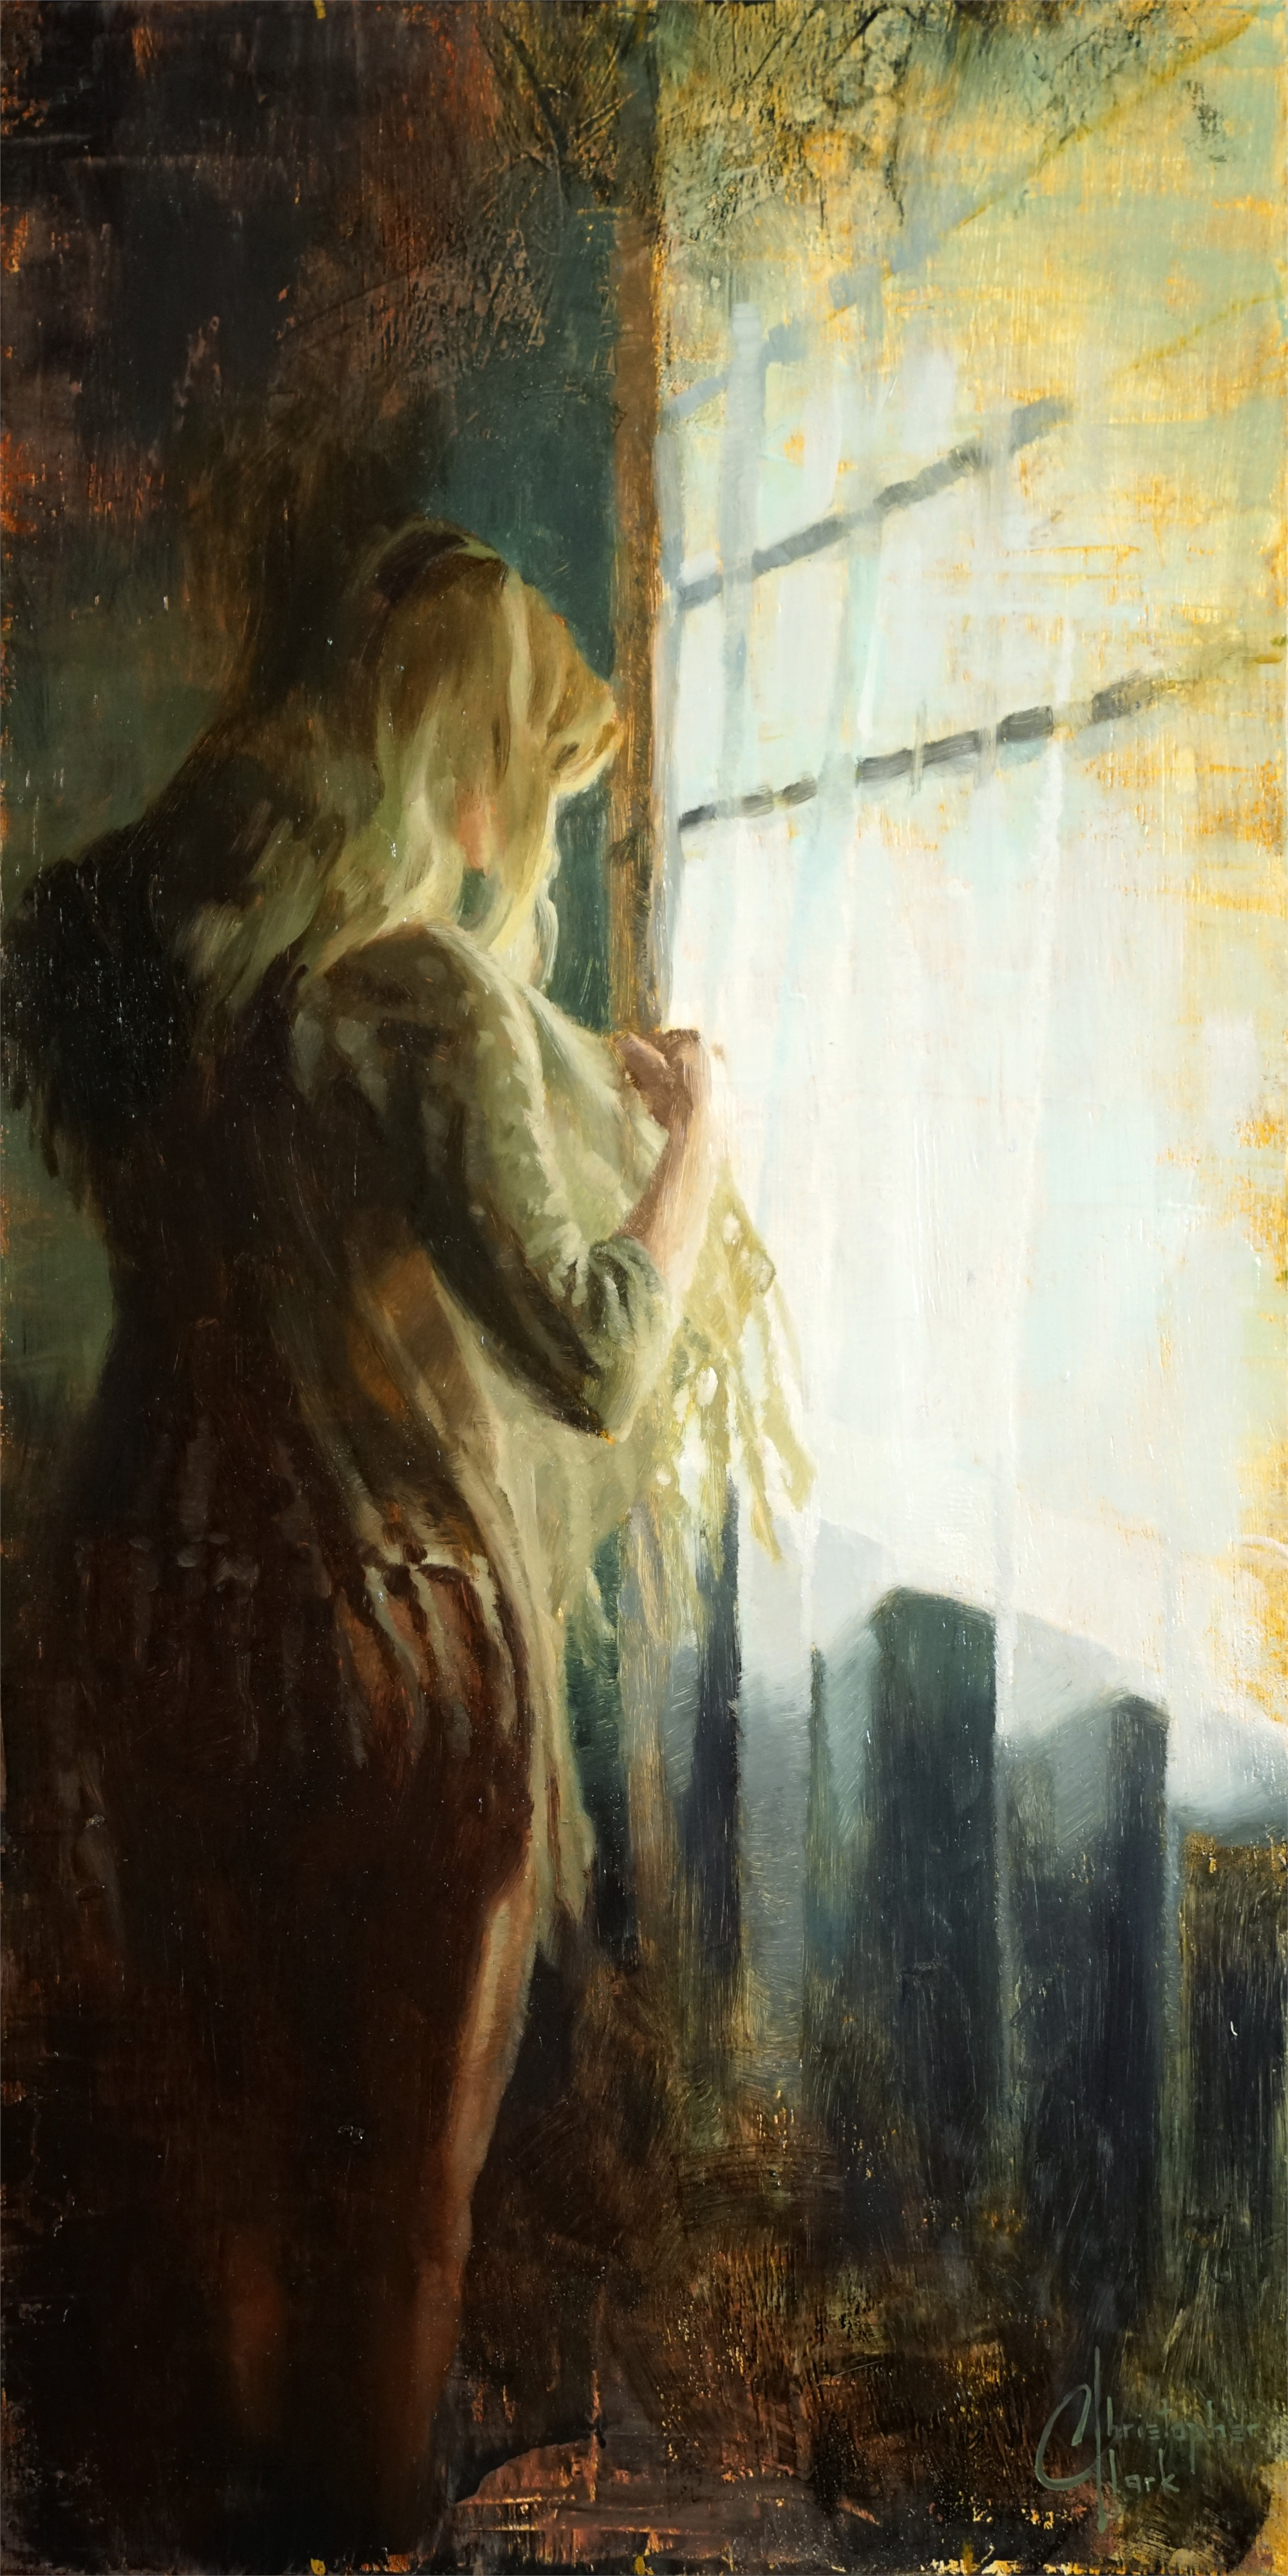 Light From the Window by Christopher Clark